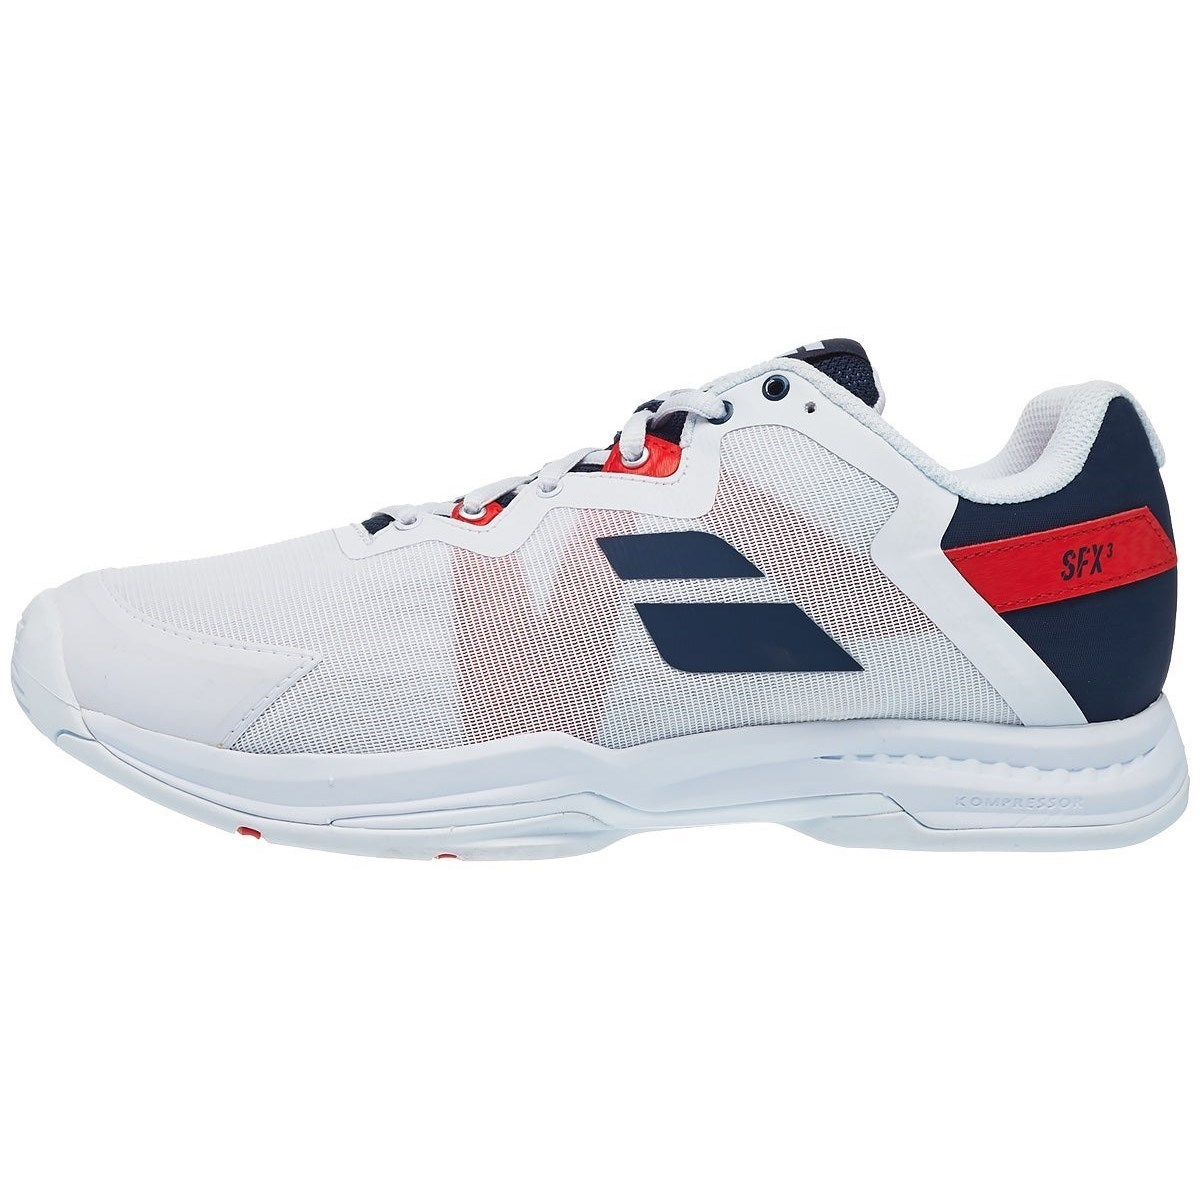 Babolat SFX3 All Court Mens Tennis Shoe – White/Red/Navy